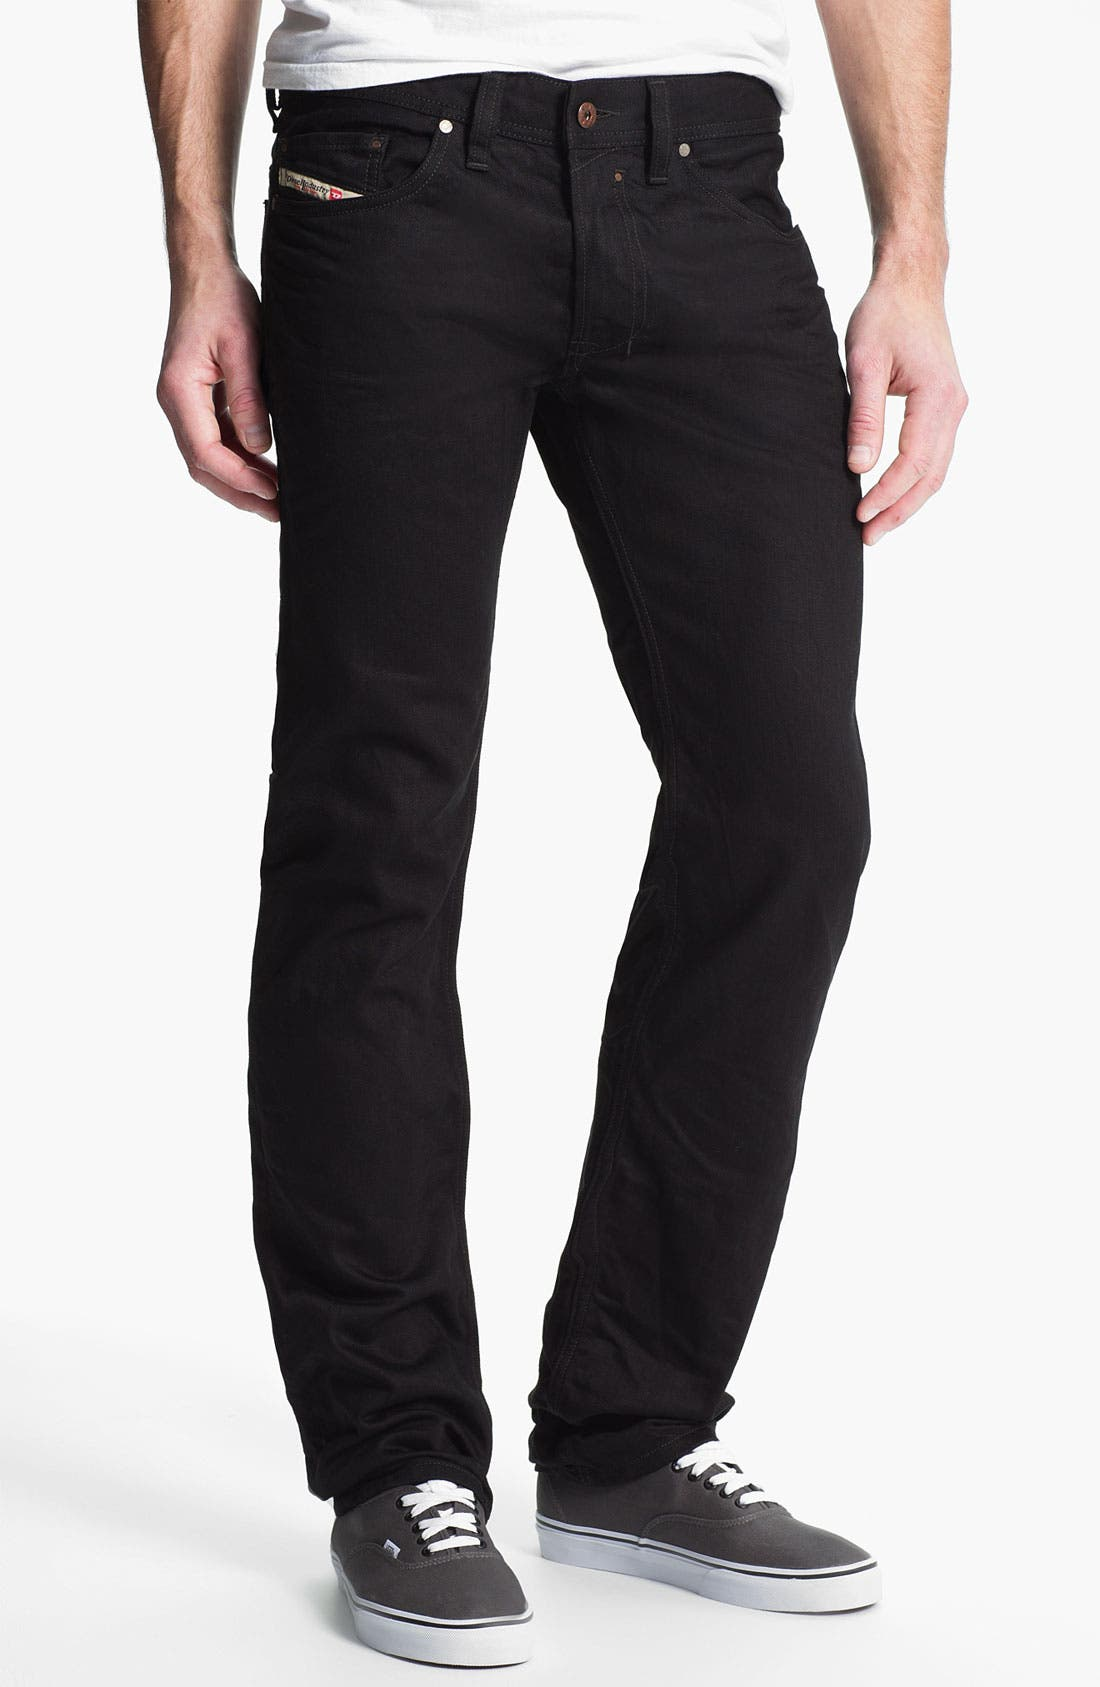 Alternate Image 1 Selected - DIESEL® 'Safado' Slim Fit Jeans (Black)